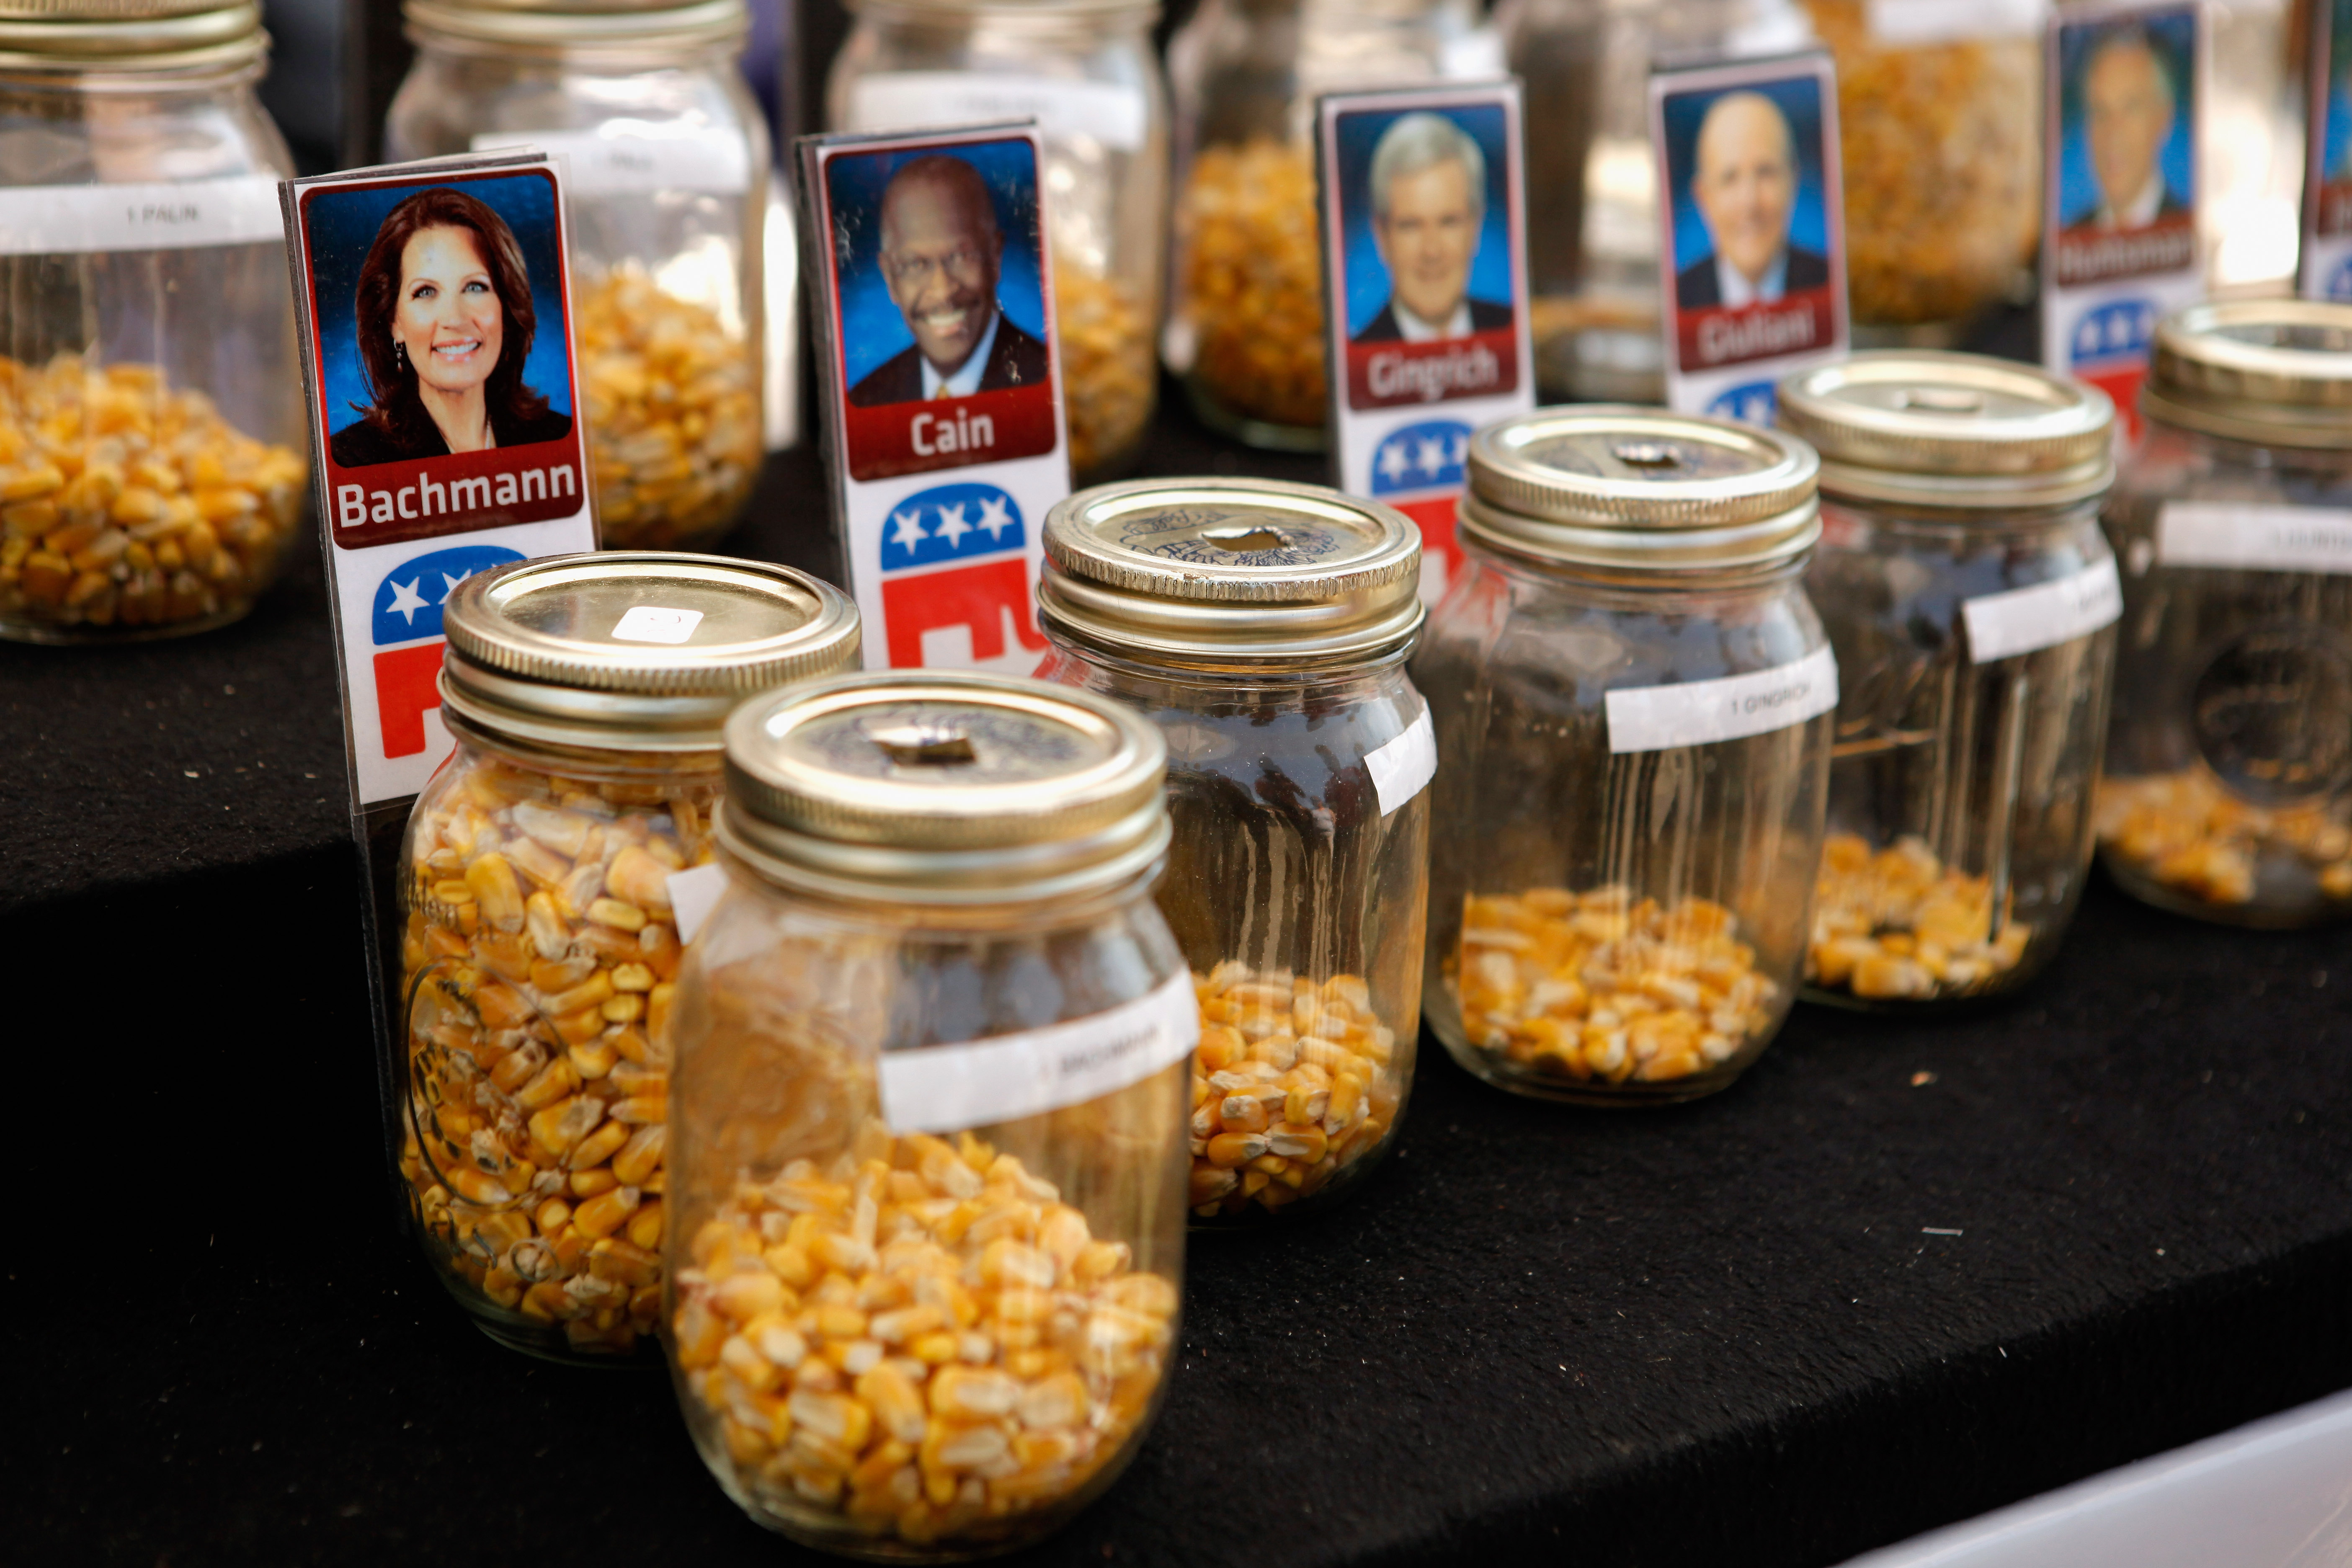 Fairgoers over the age of 18 are invited to drop one piece of corn into one of 14 jars with photos of their favorite Republican presidential candidate during the second day of the Iowa State Fair ahead of the Iowa Straw Poll on Aug. 12, 2011 in Des Moines, Iowa.